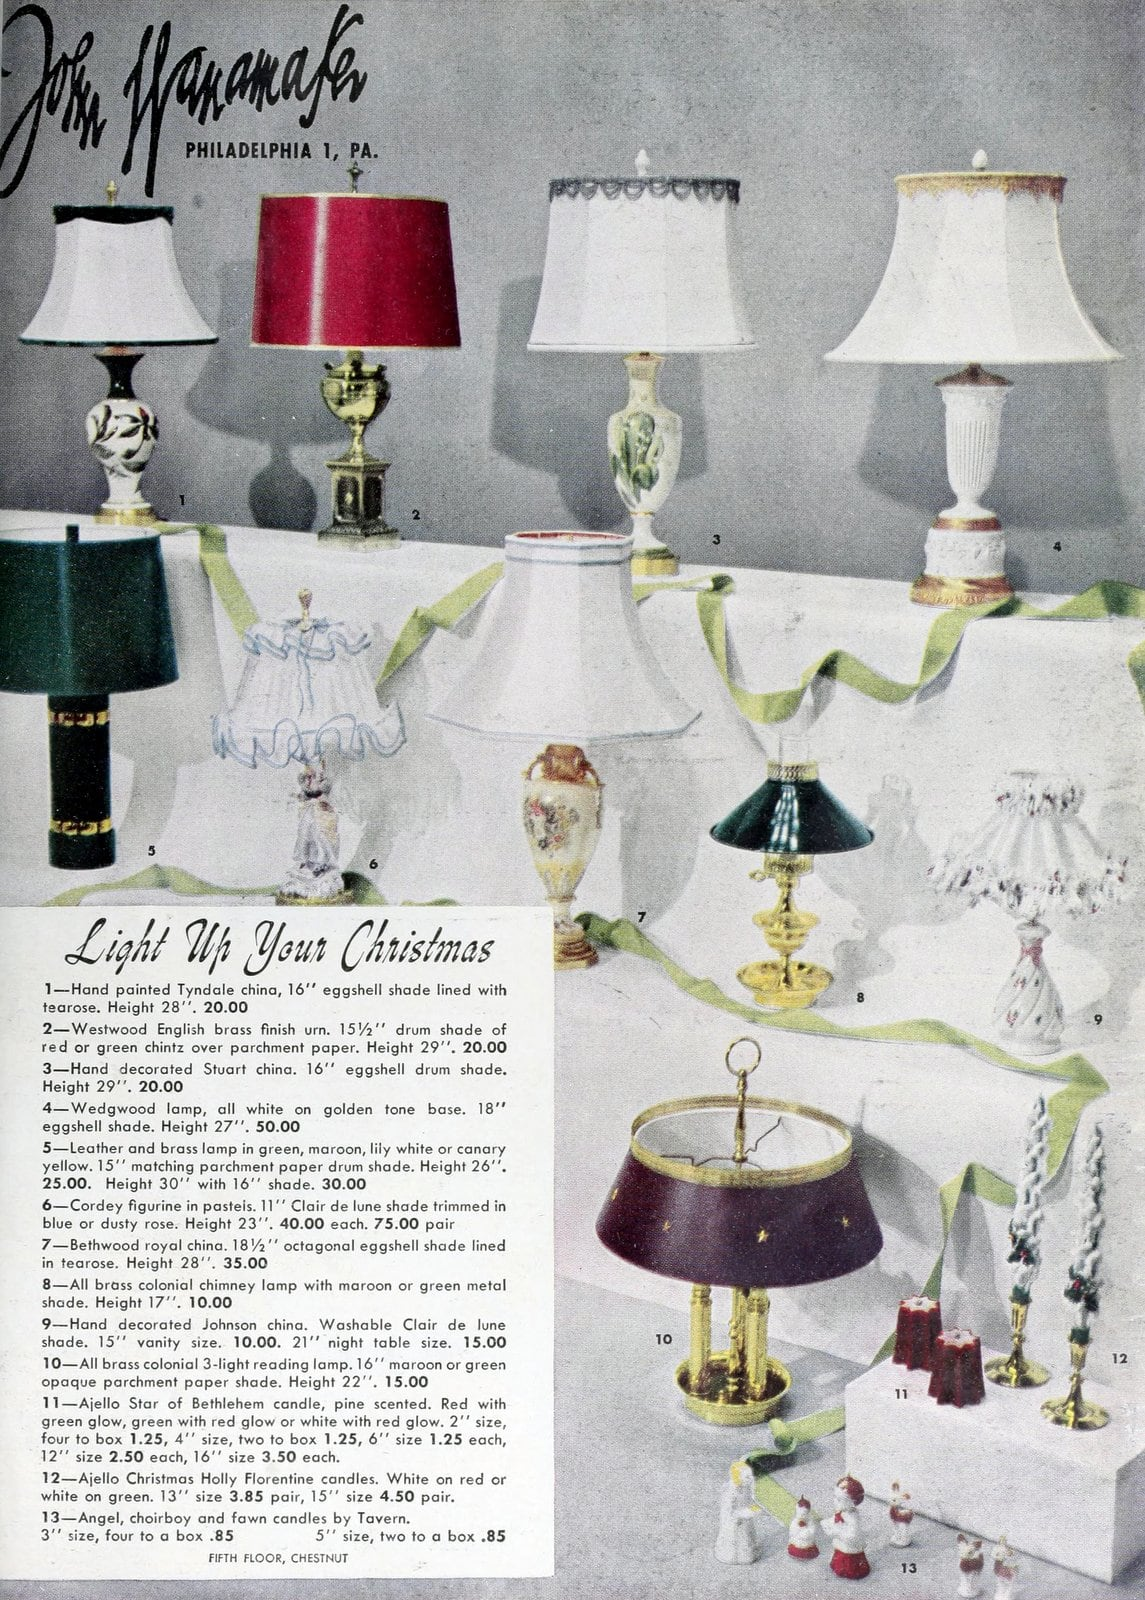 Vintage lamp and light styles from Wanamaker's (1948)